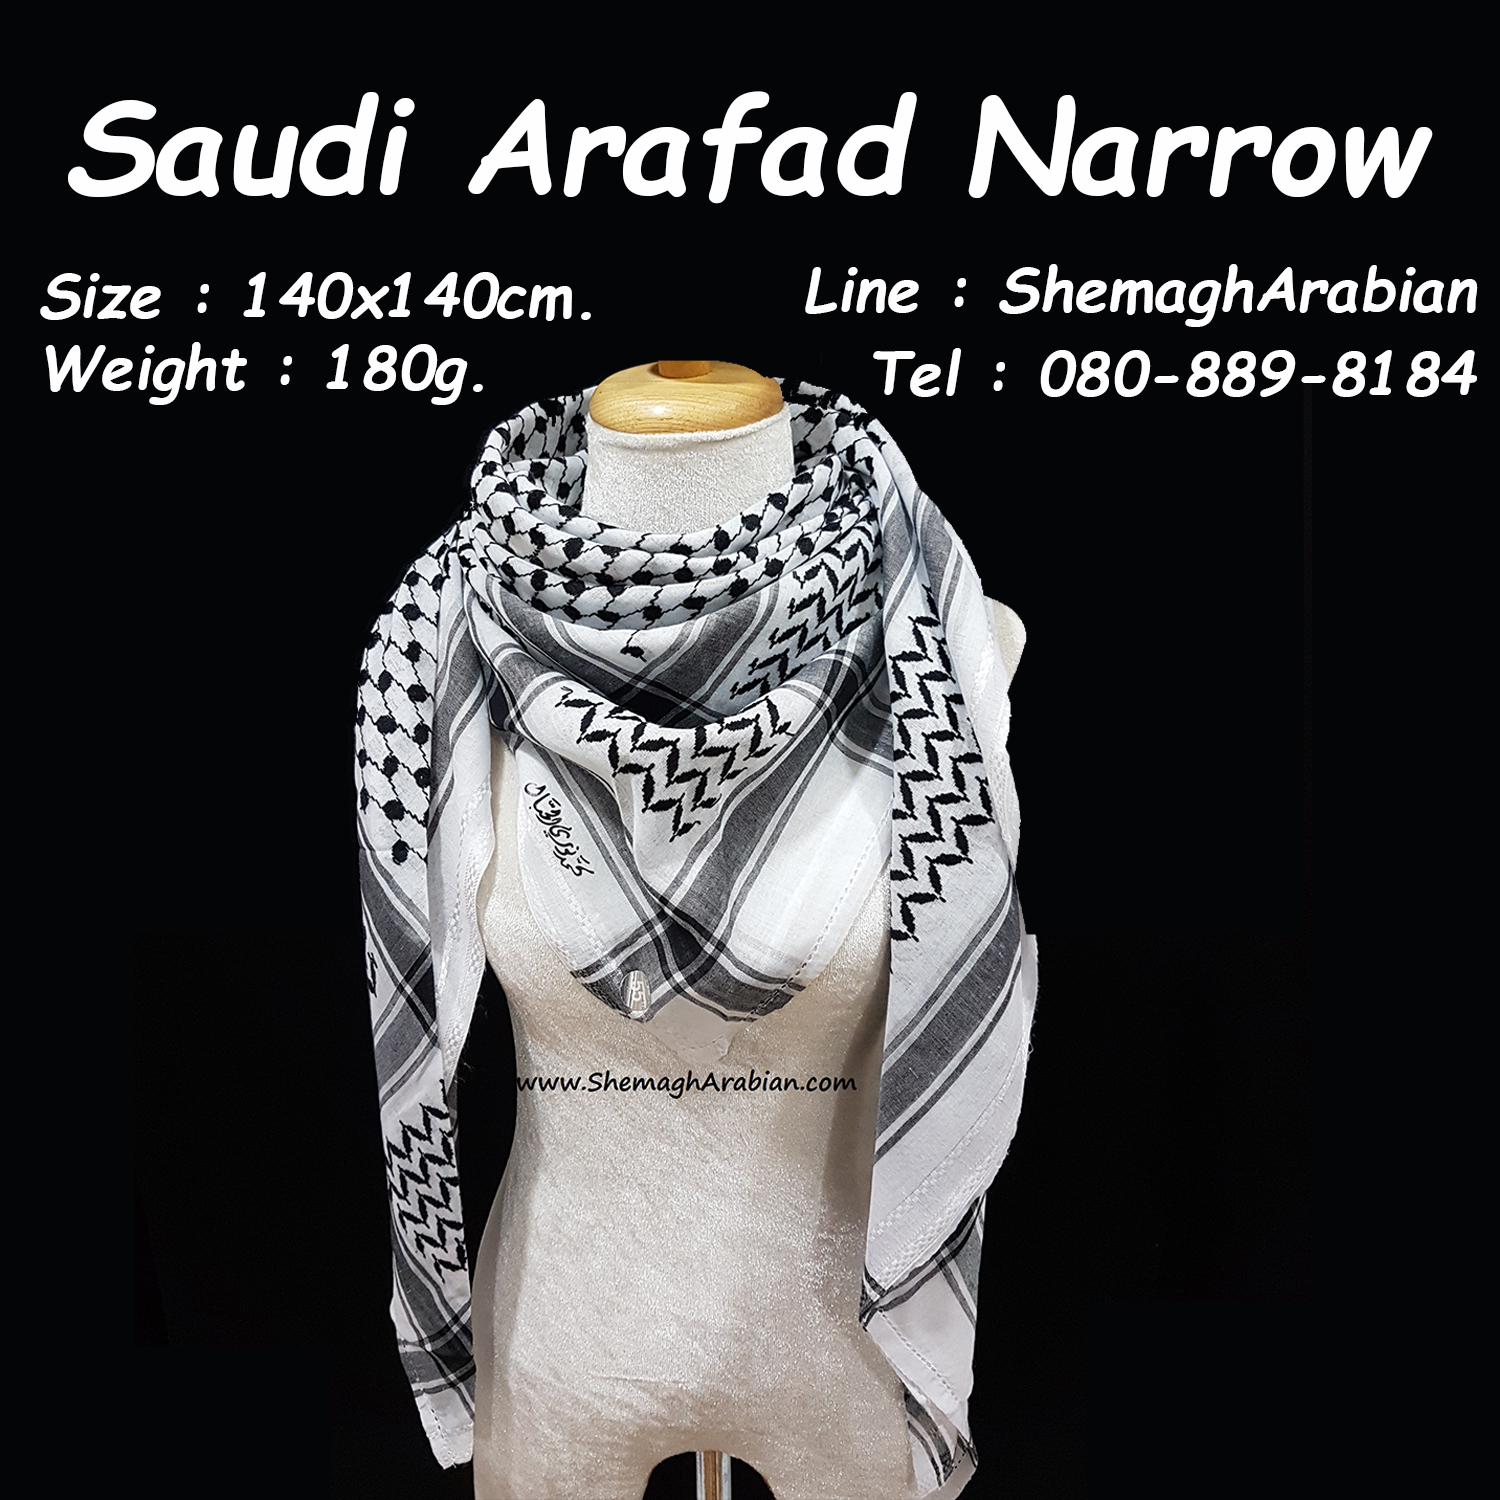 Saudi Arafad Narrow